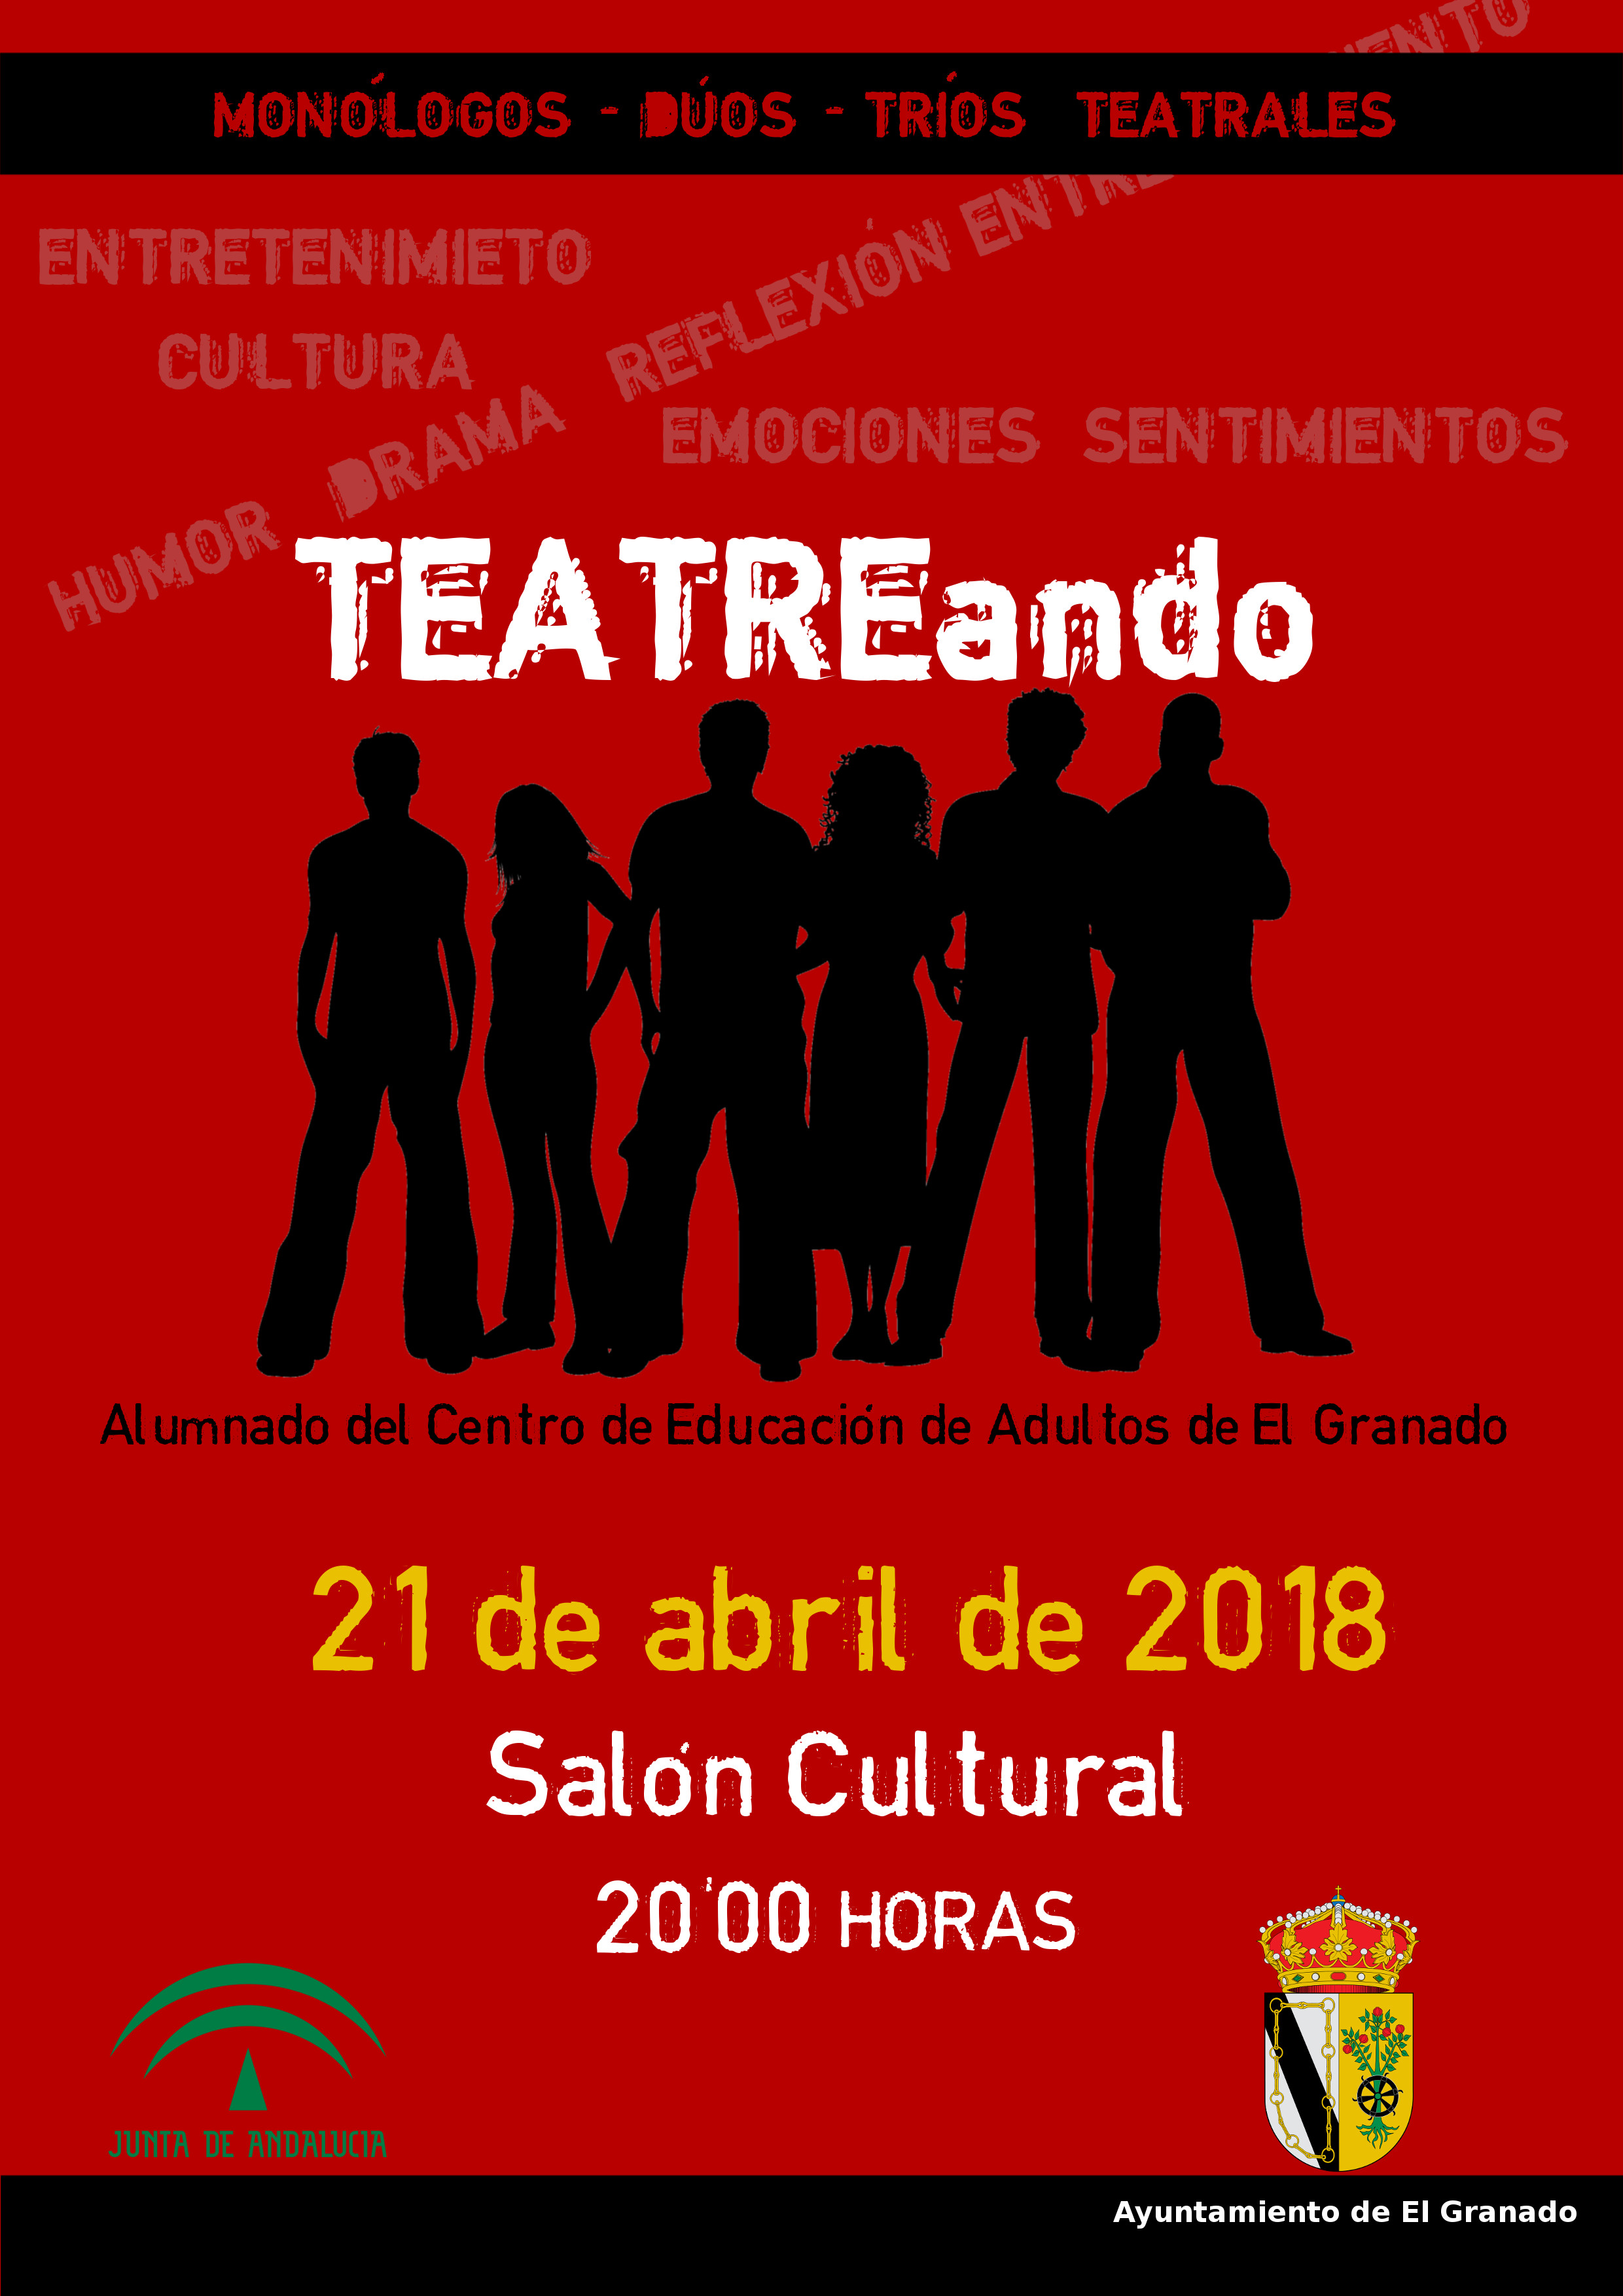 cartel teatro 21 de abril 2